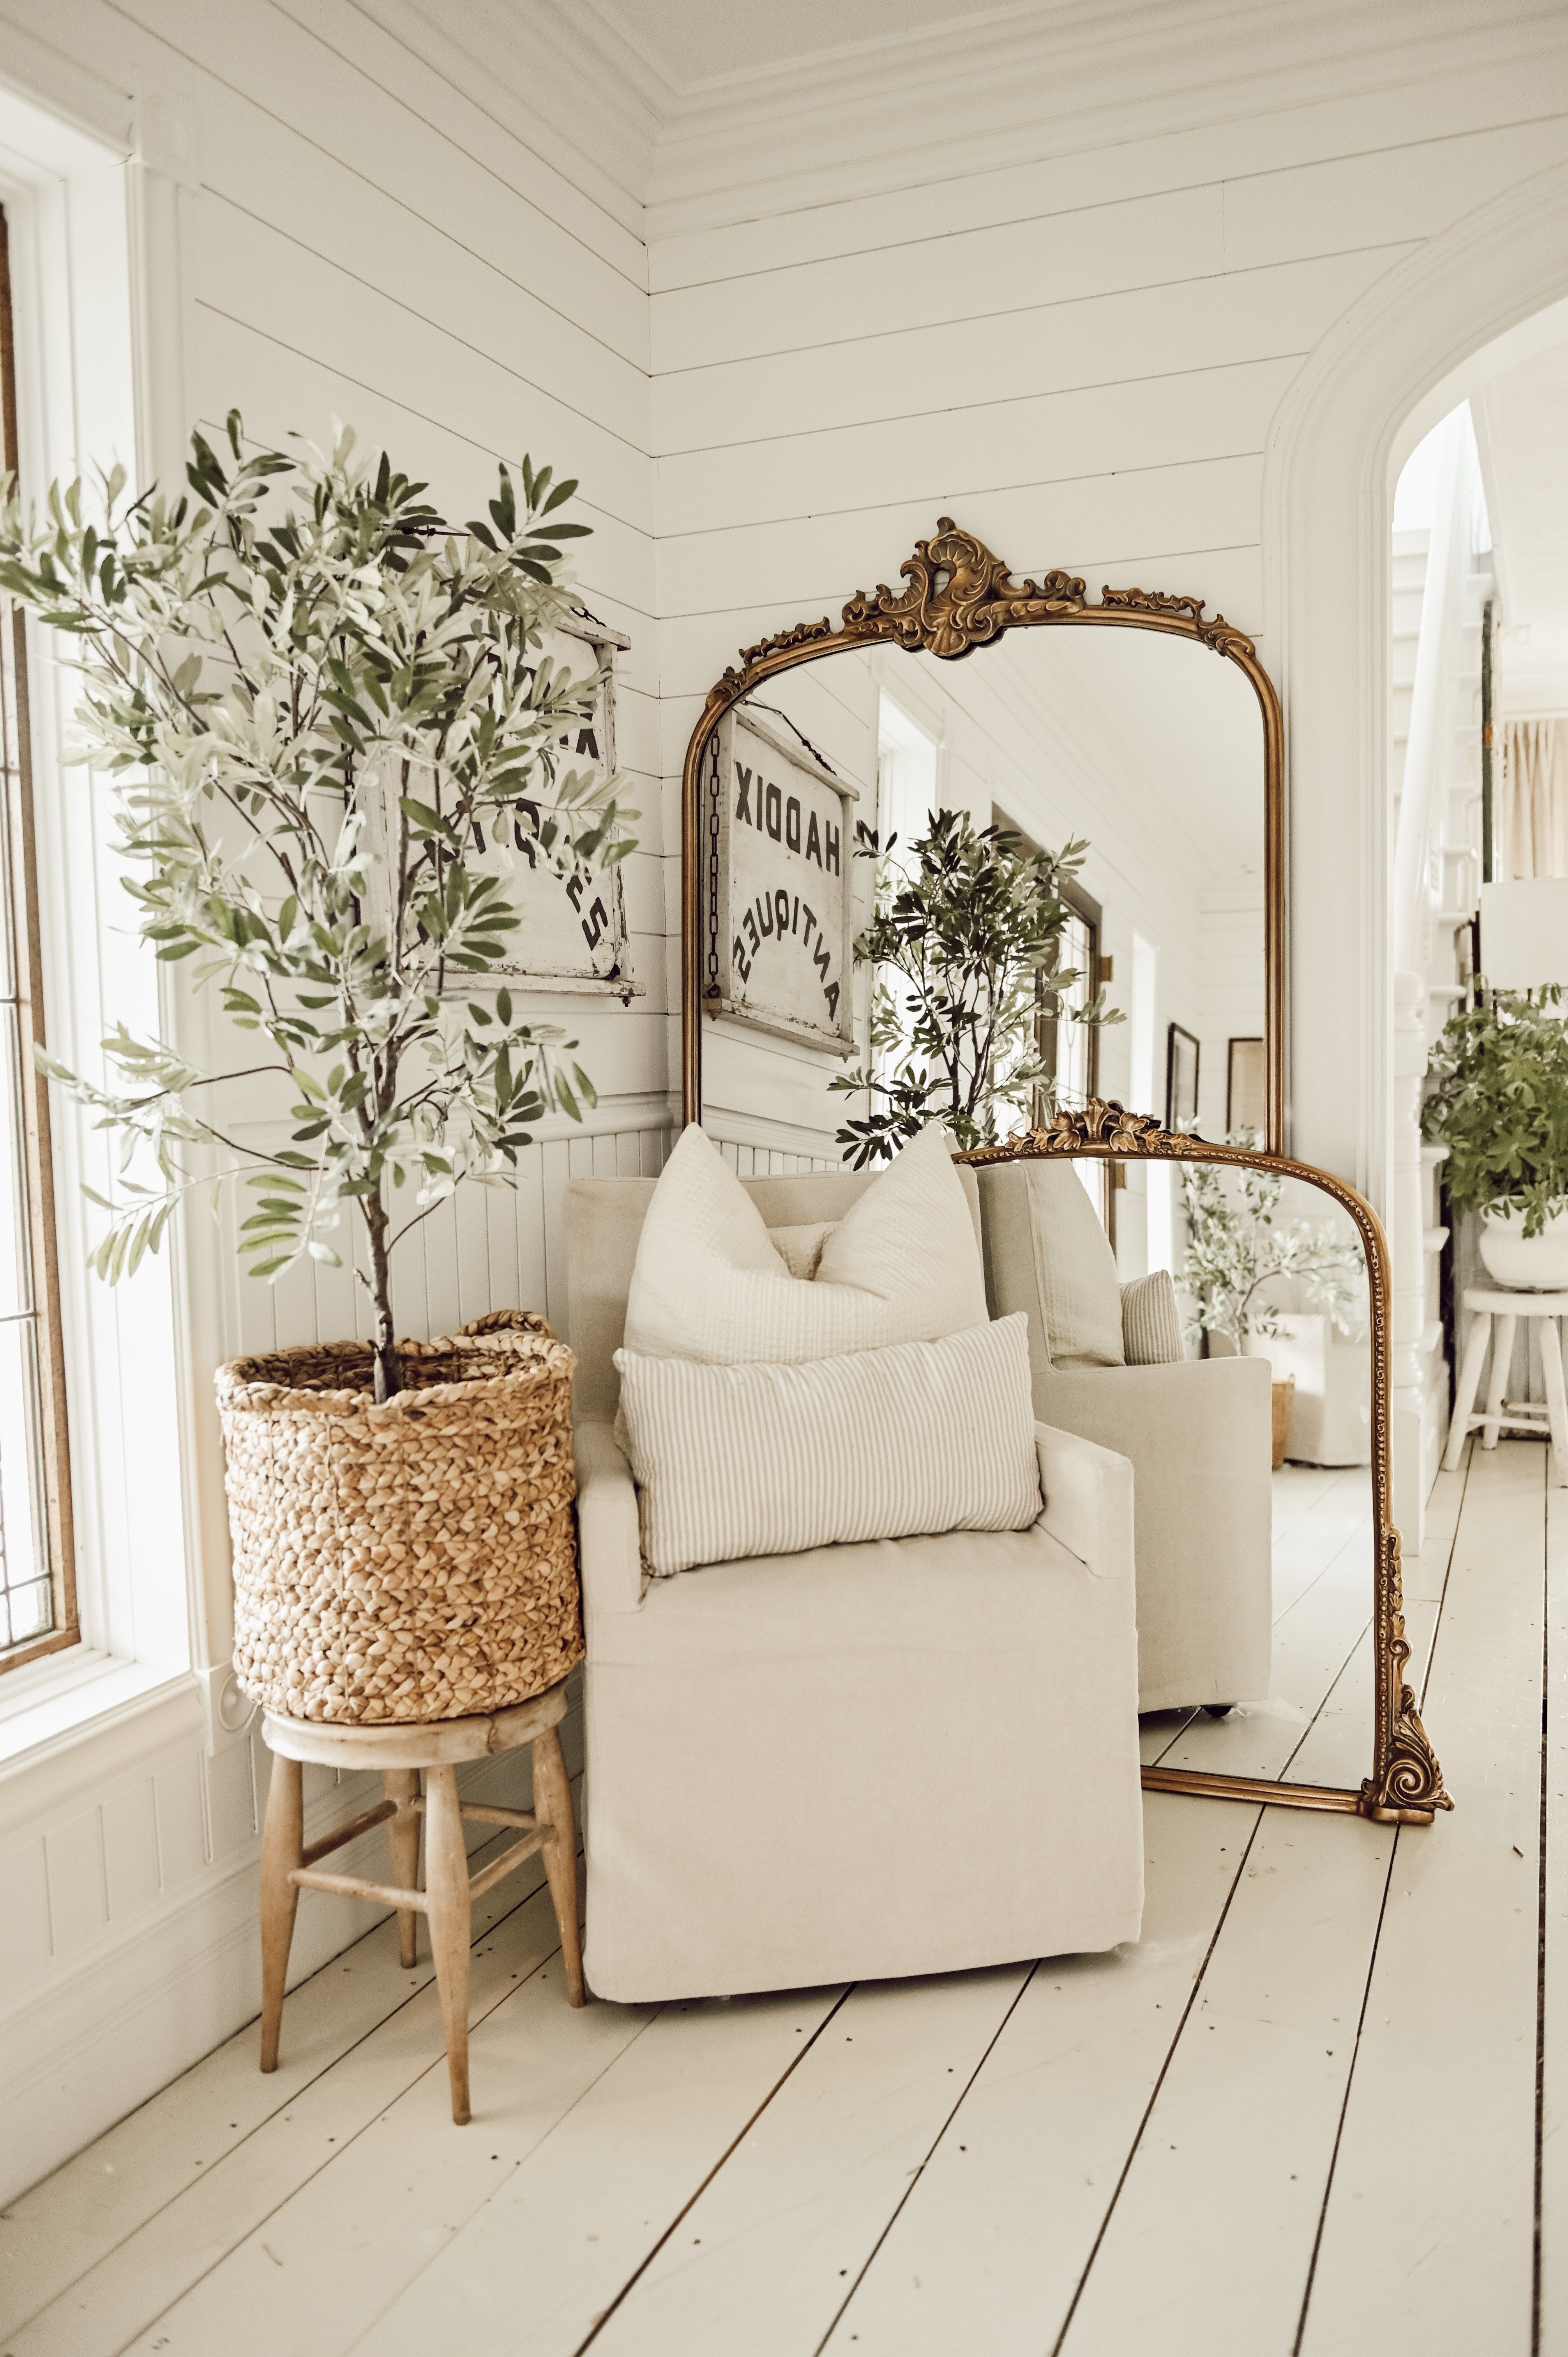 Get The Most Beautiful Mirror In The World For Free Decor Home